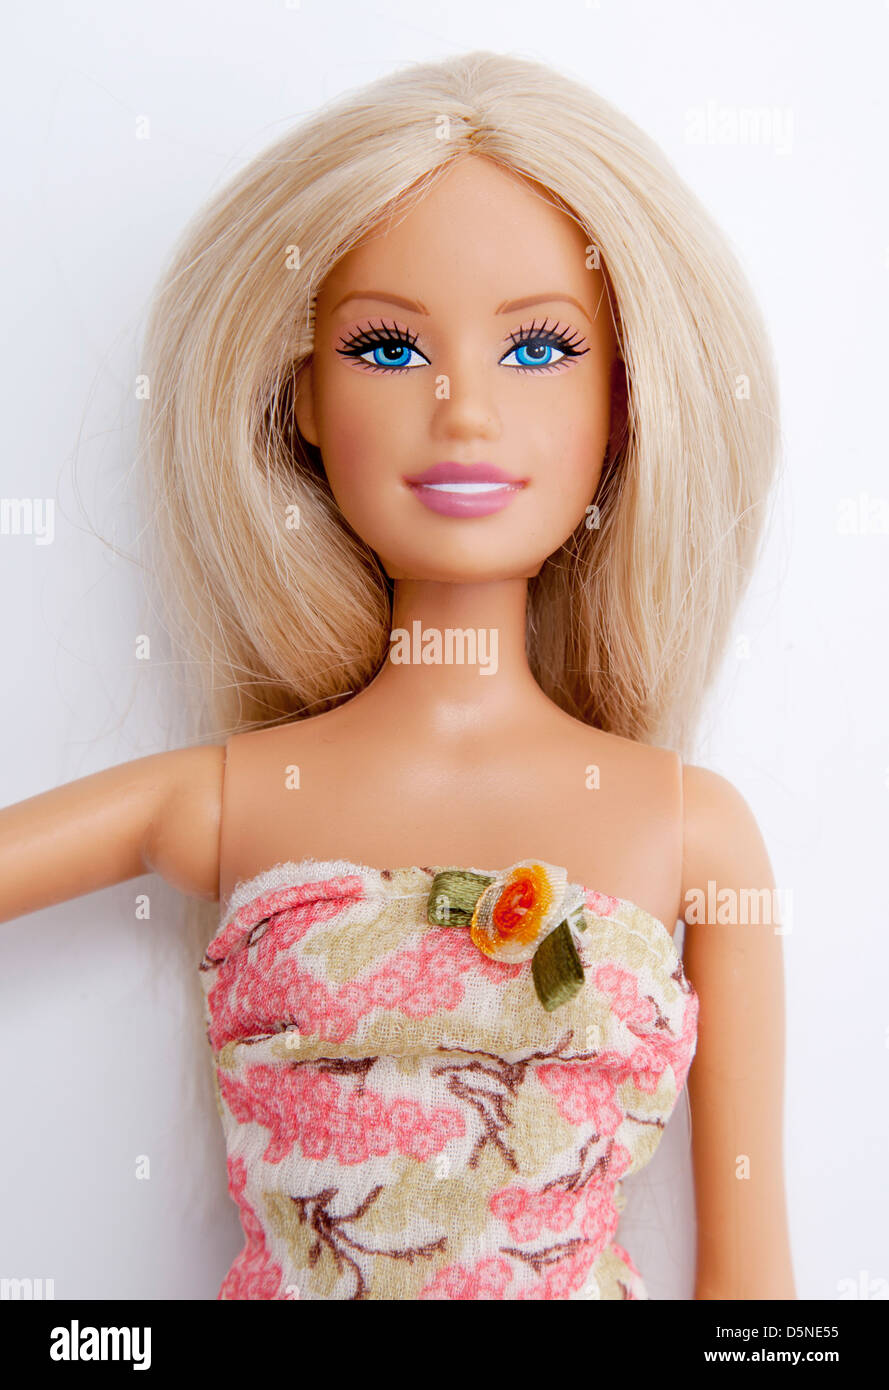 Close Up Of Barbie Doll Wearing A Pink Dress